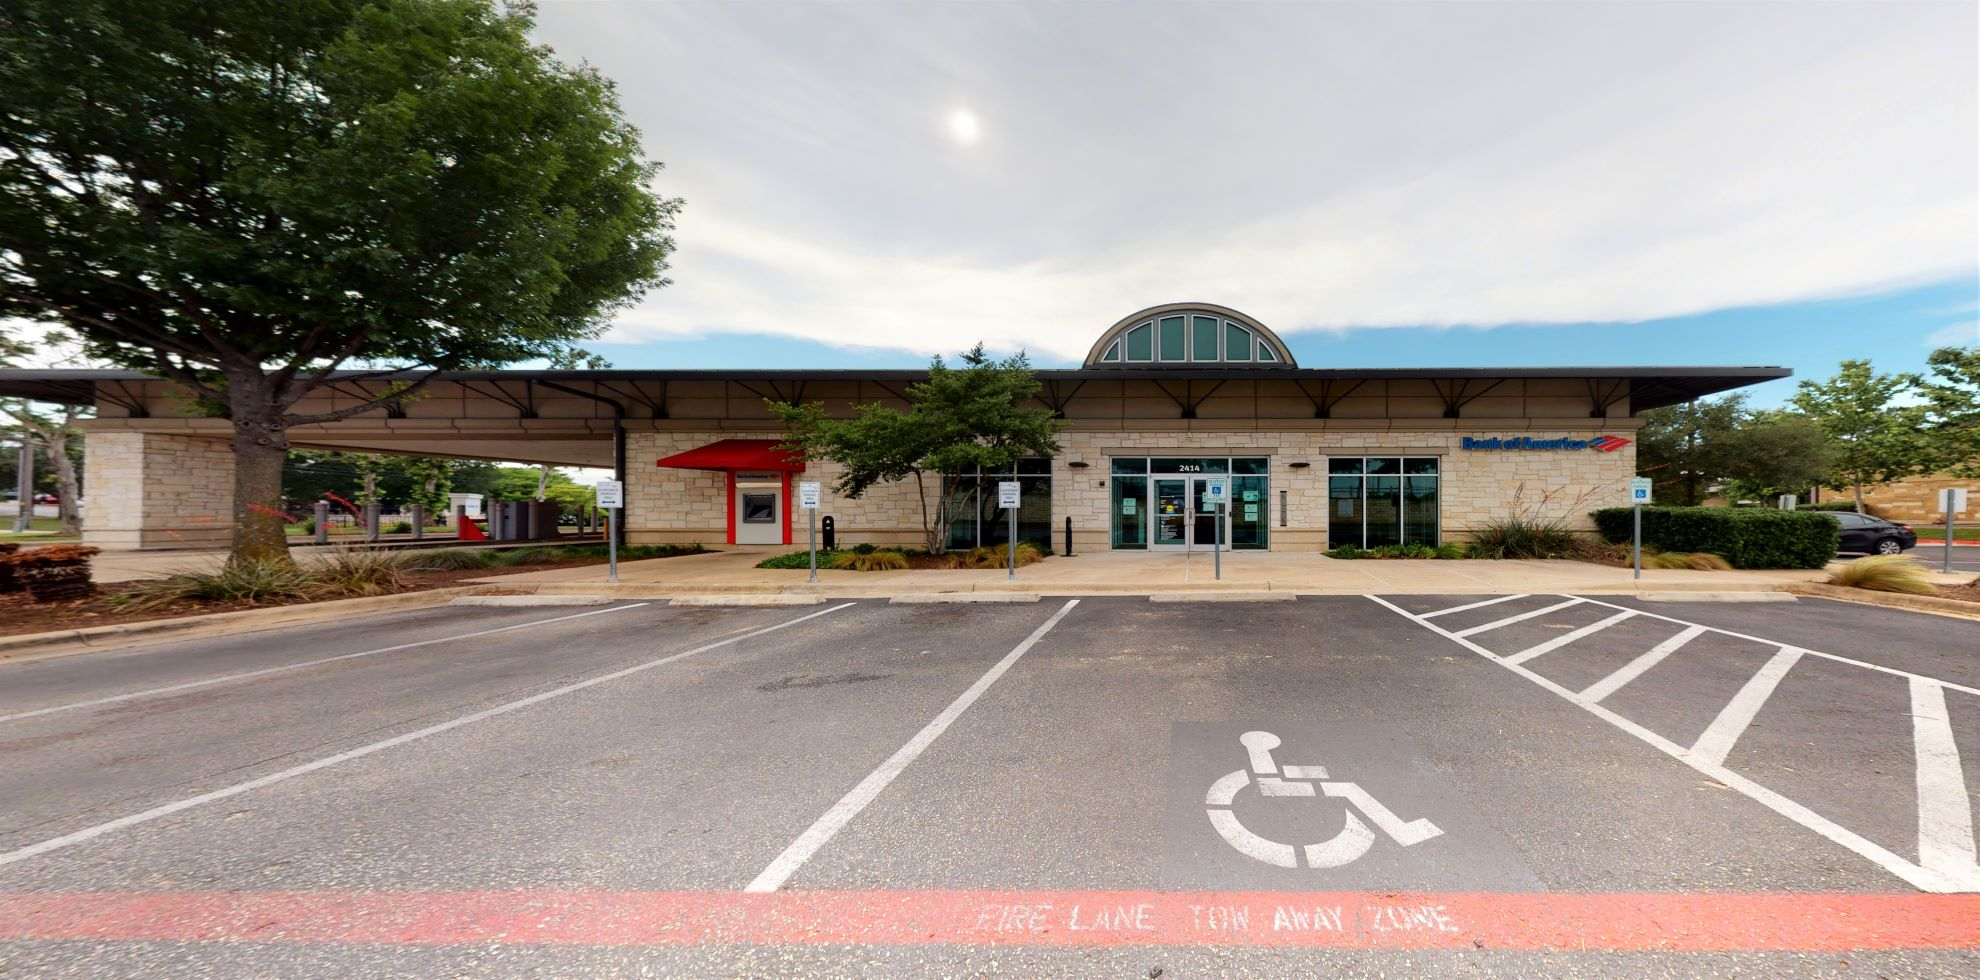 Bank of America financial center with drive-thru ATM | 2414 Ranch Rd 620 S, Lakeway, TX 78738